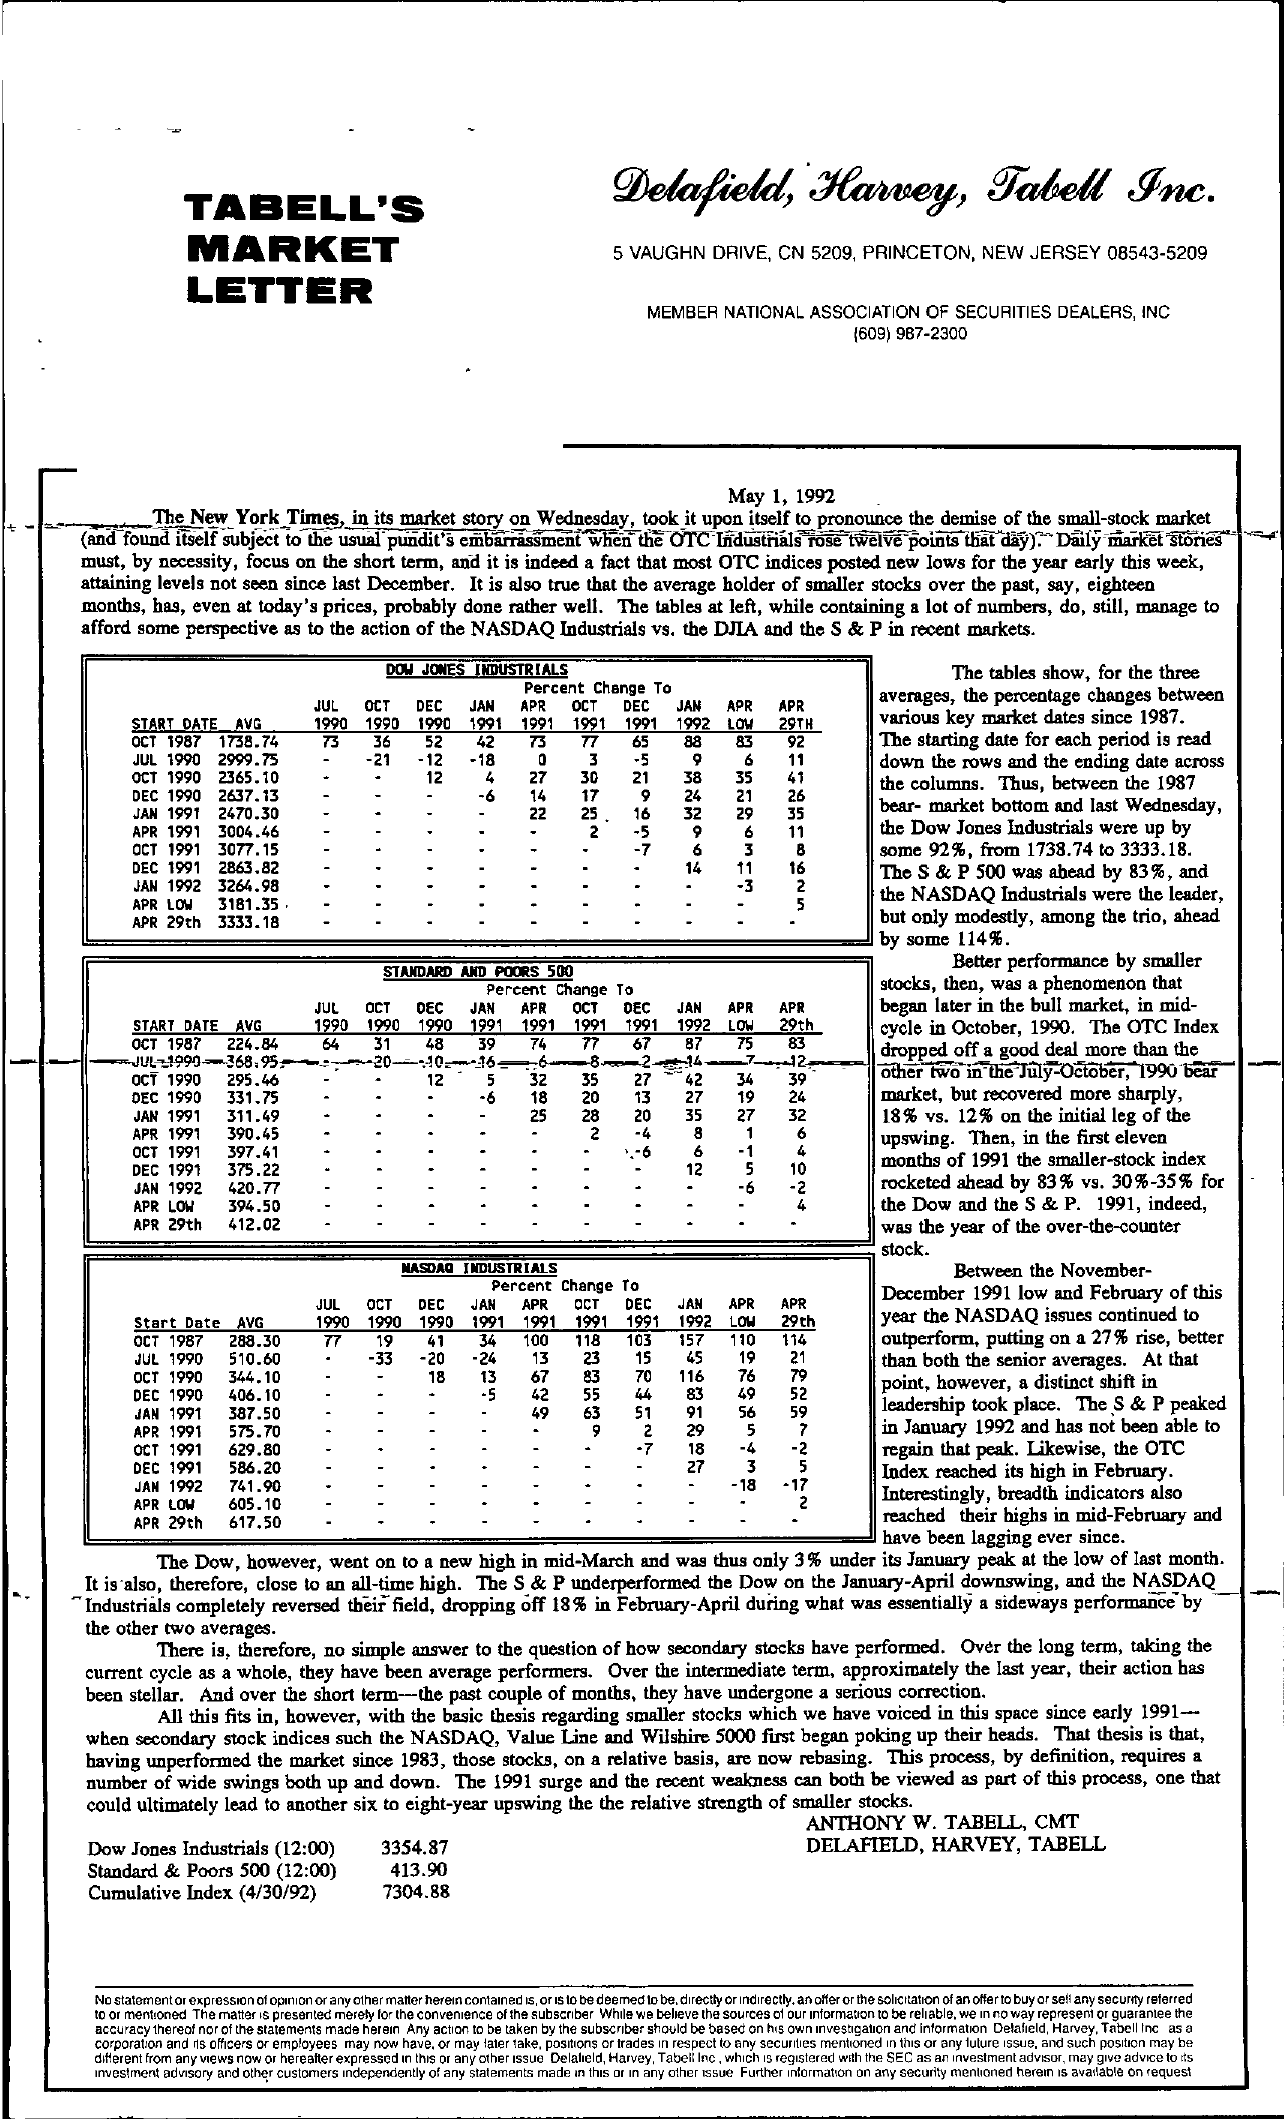 Tabell's Market Letter - May 01, 1992